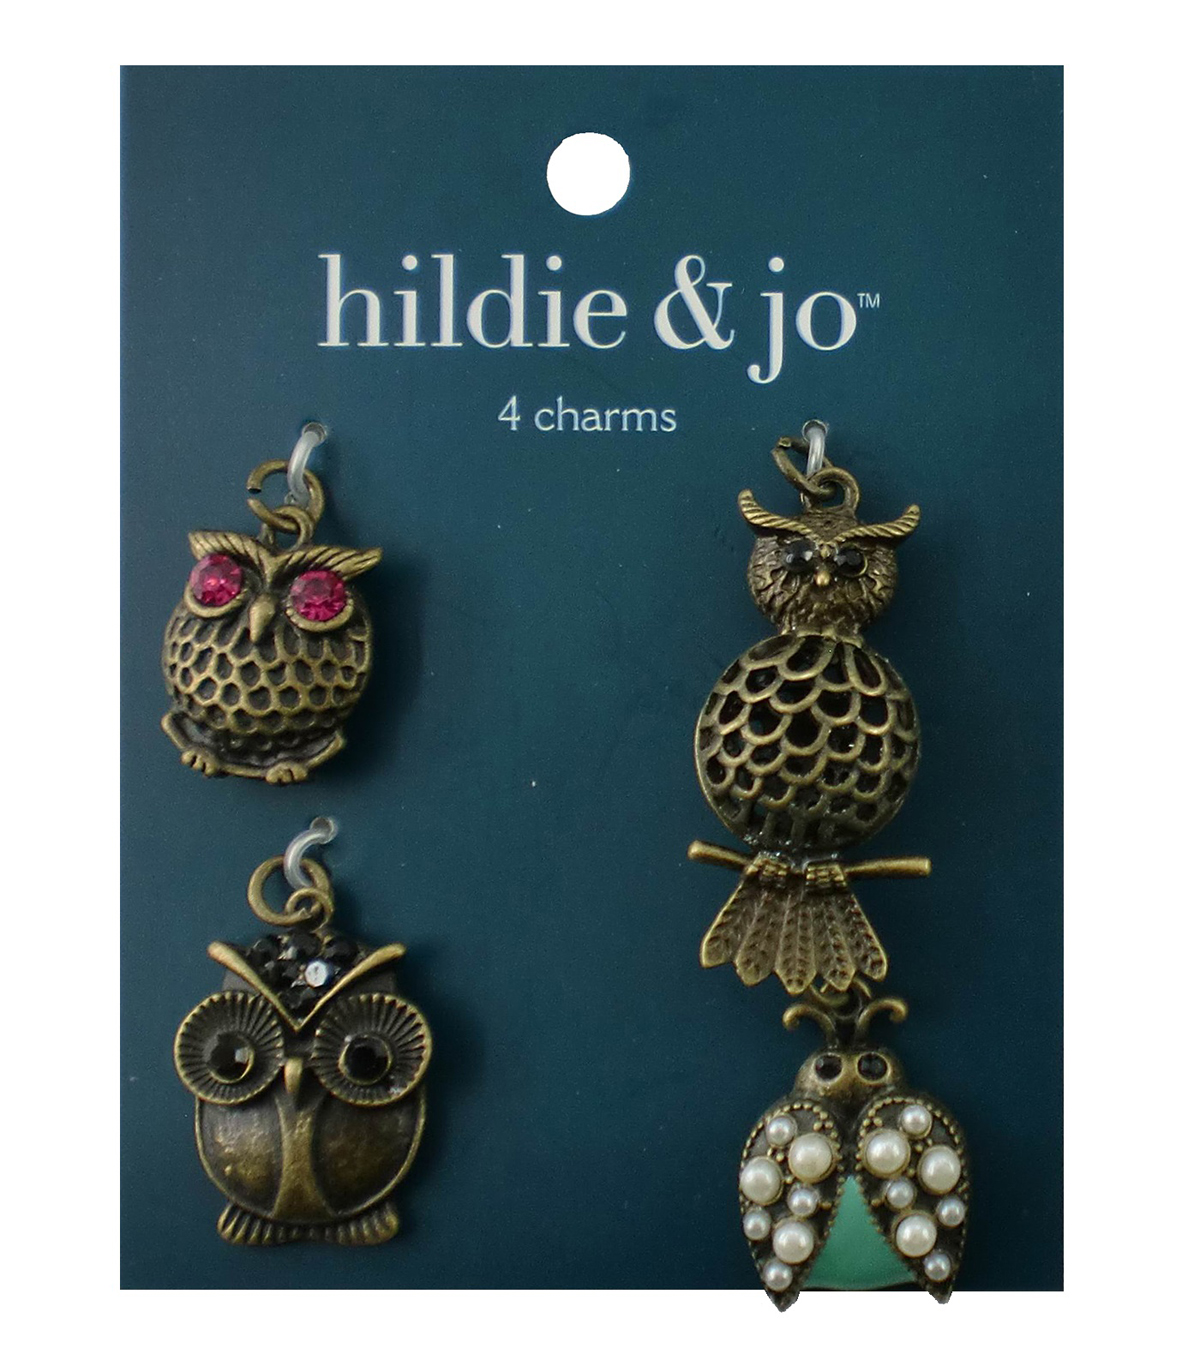 hildie & jo 4 Pack Owl & Bug Antique Gold Charms-Pearls, Crystals